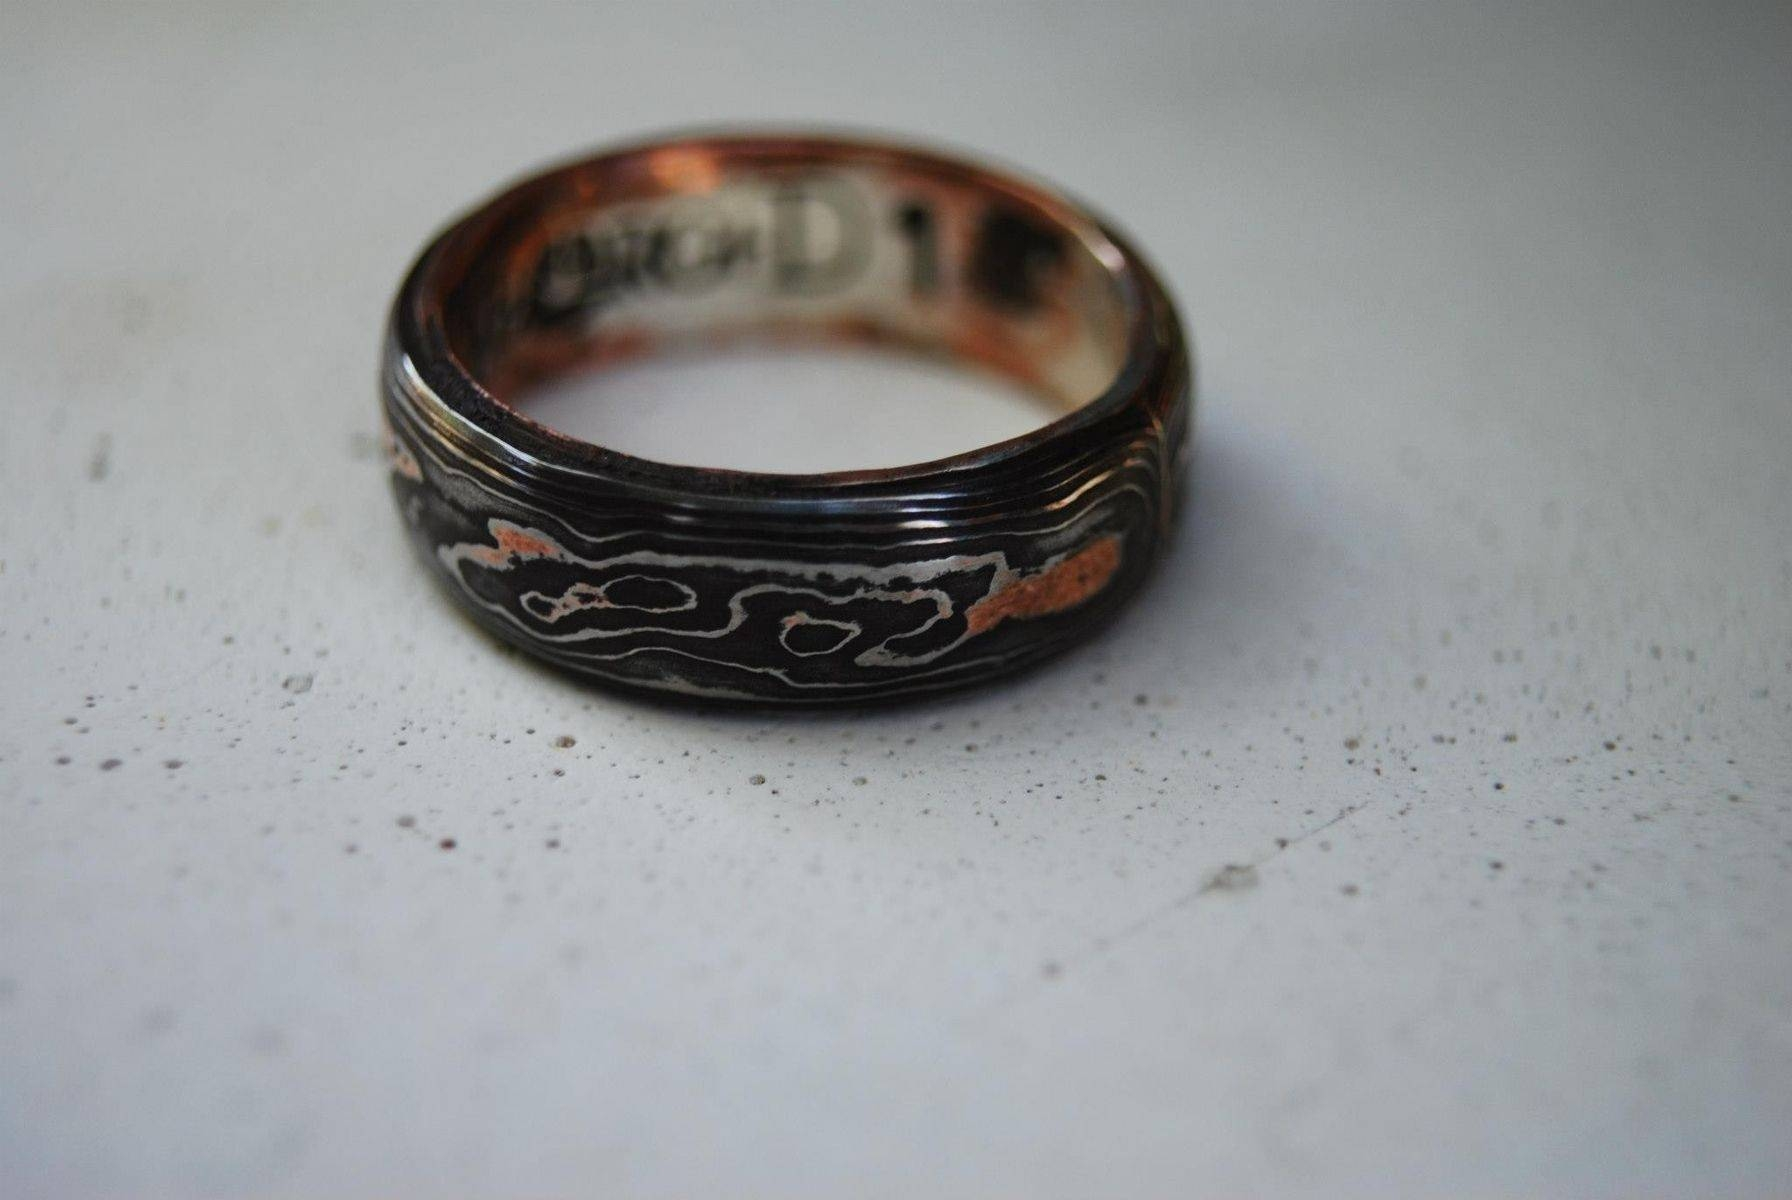 Hand Made Pattern Welded, Damascus, Woodgrain Wedding Band Intended For Wood Grain Wedding Bands (View 7 of 15)